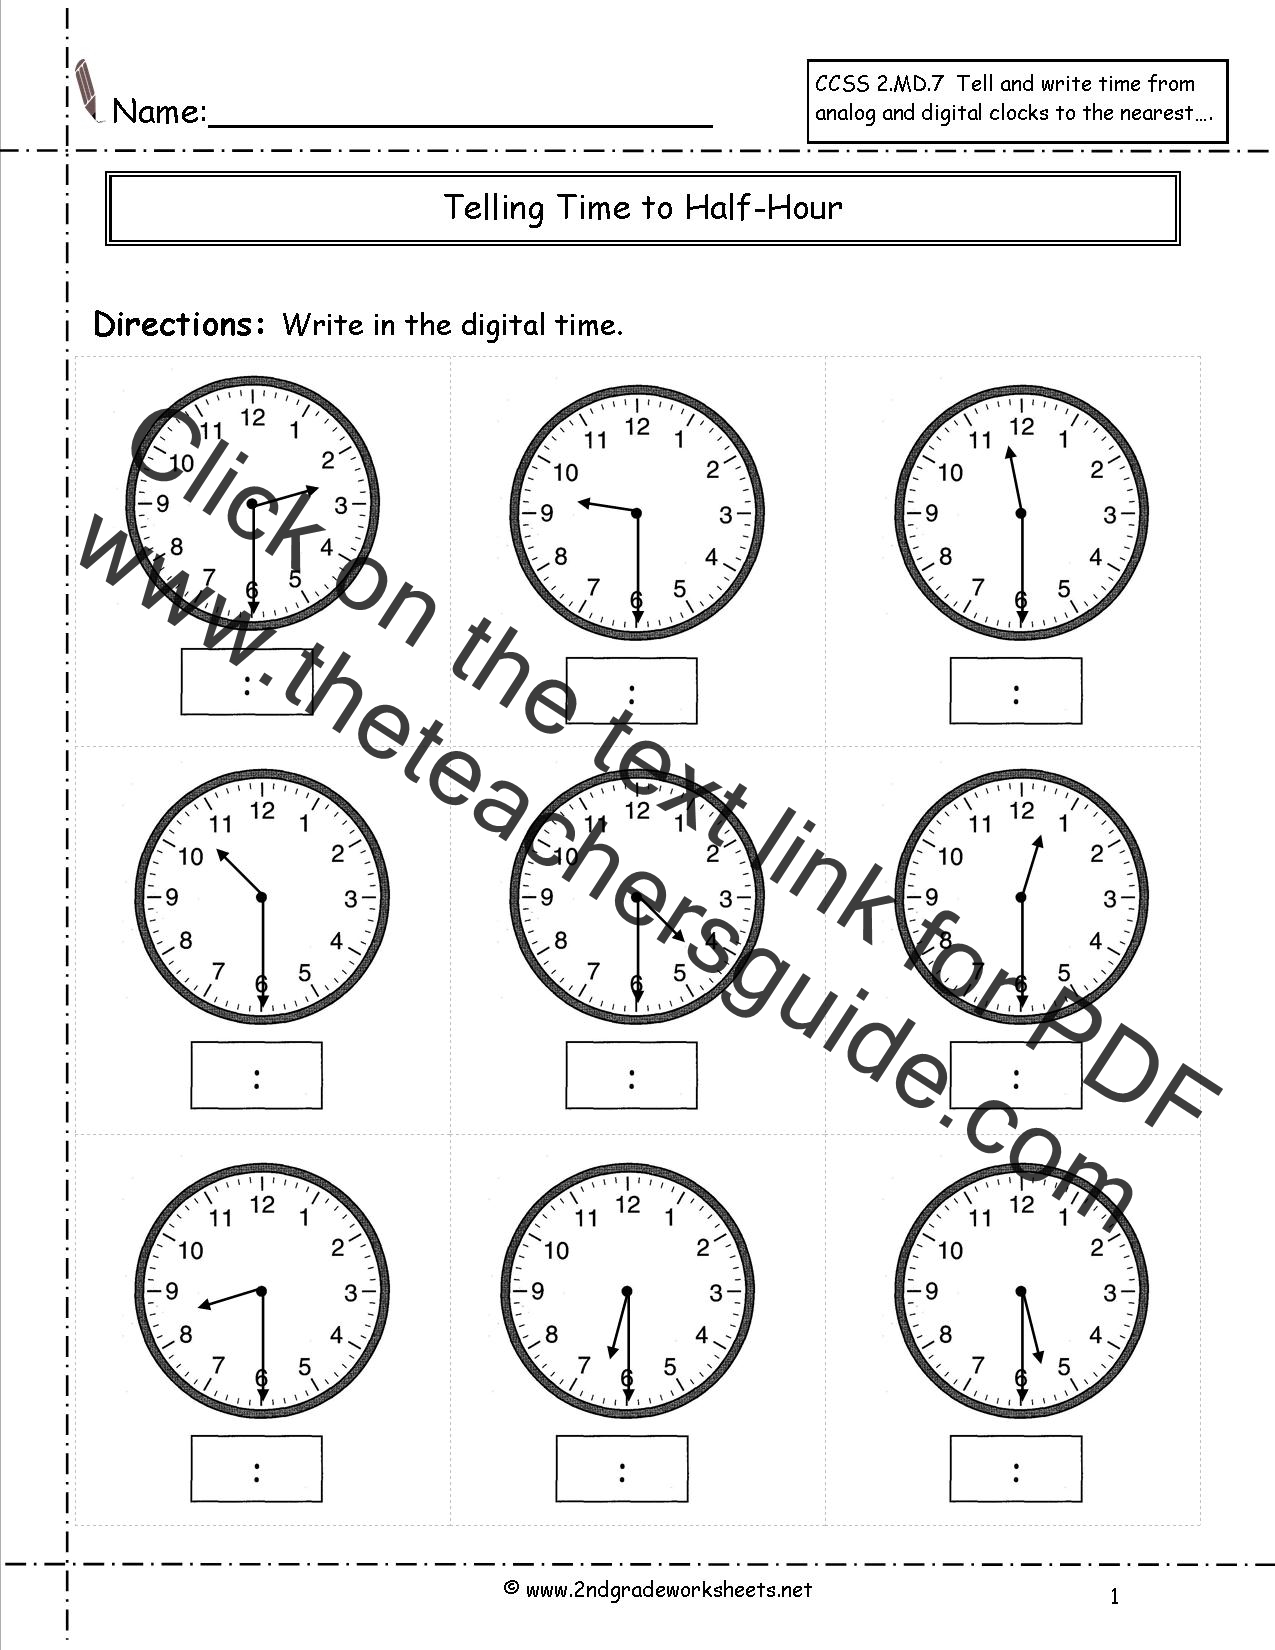 worksheet Time Worksheets For Grade 2 telling and writing time worksheets to nearest half hour worksheet